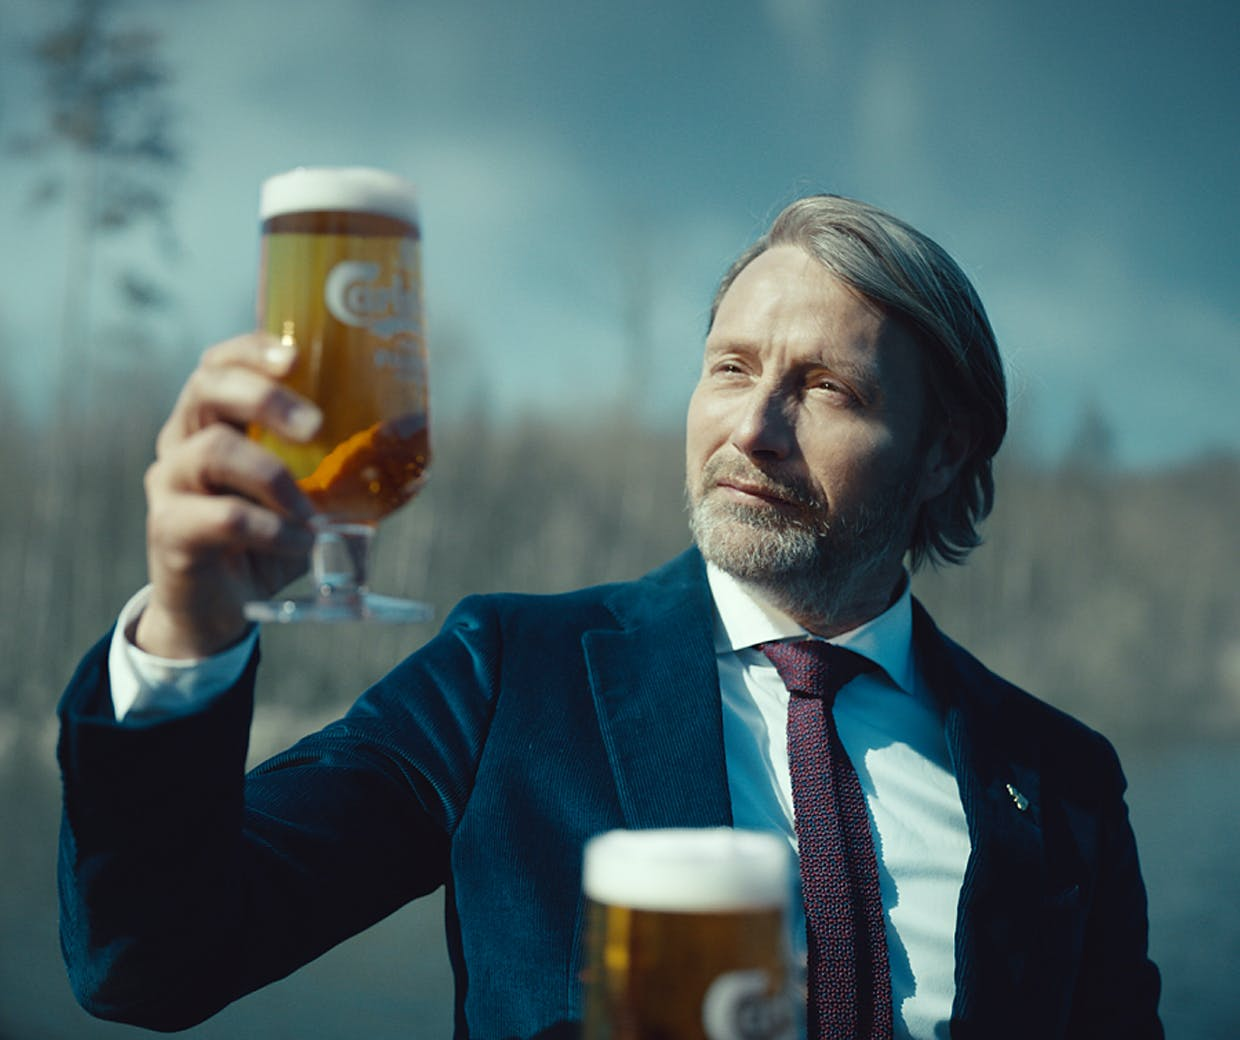 Carlsberg brings its 'Probably not the best beer' campaign to TV